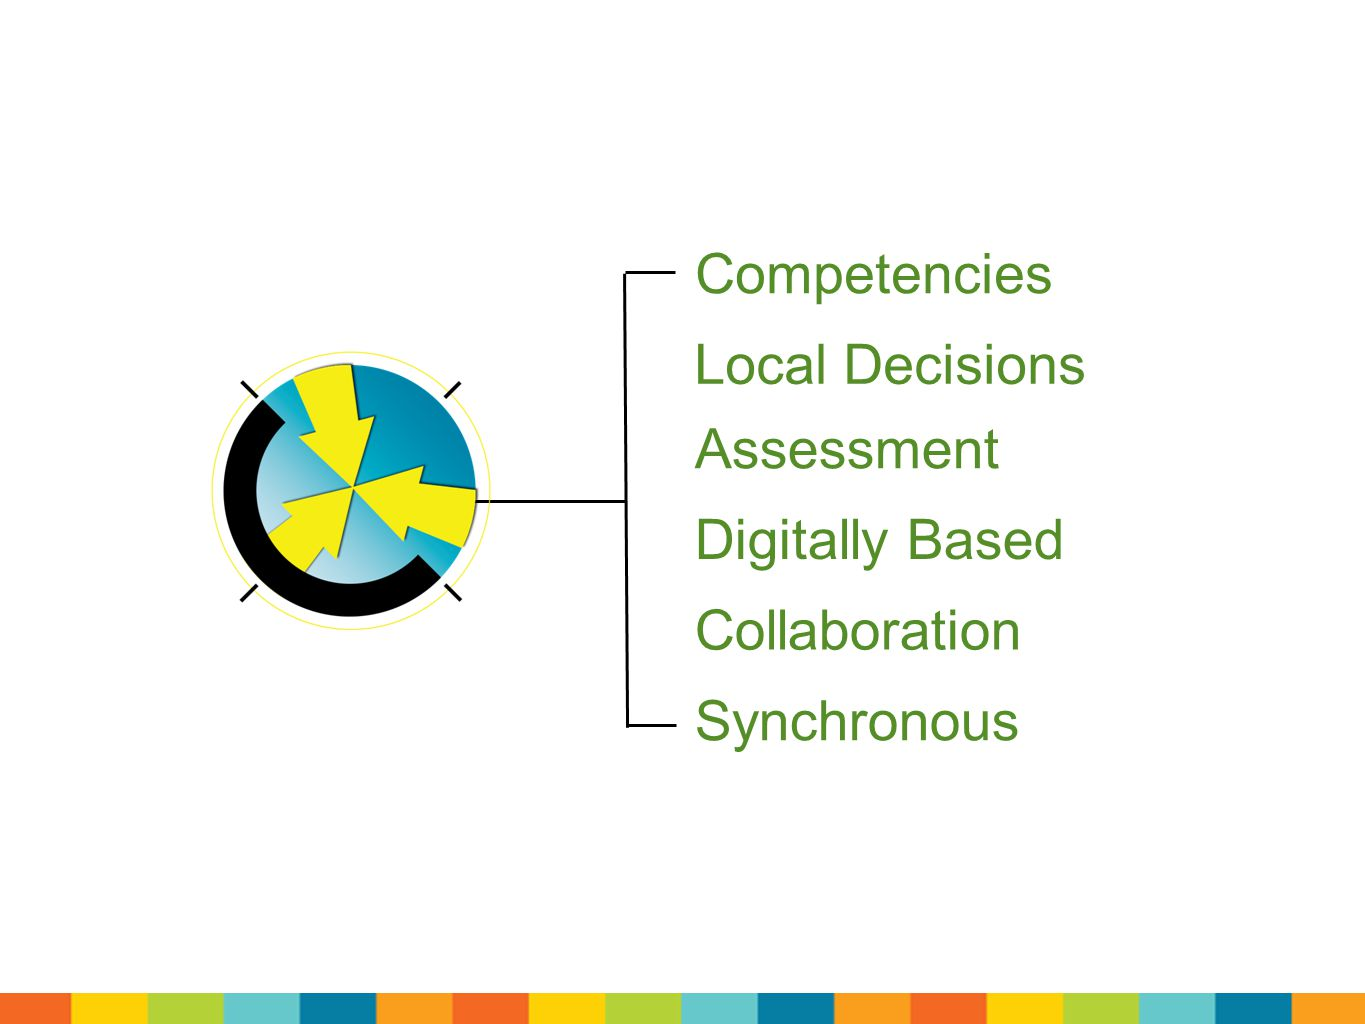 Competencies Local Decisions Assessment Digitally Based Synchronous Collaboration